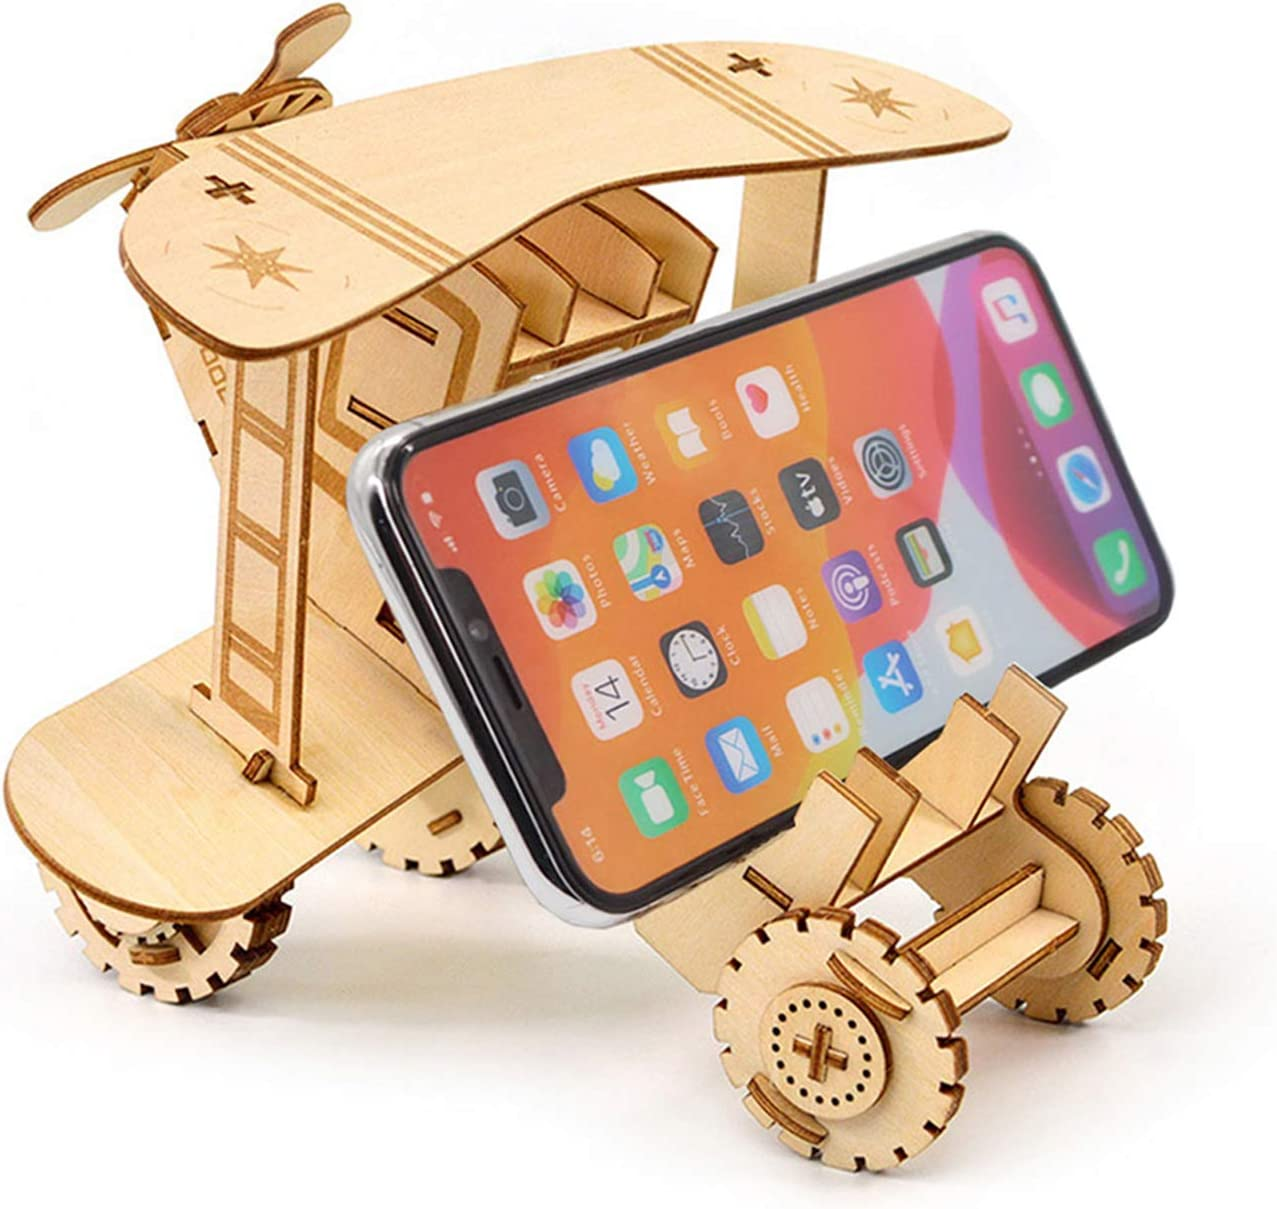 SEEHAN 3D Wooden Puzzle for Adults Airplane Model Puzzle Wood Crafts Assemble Jigsaw Puzzle Toys Model Kits Gifts for Kids Cell Phone Stand Phone Holder for Office Desk